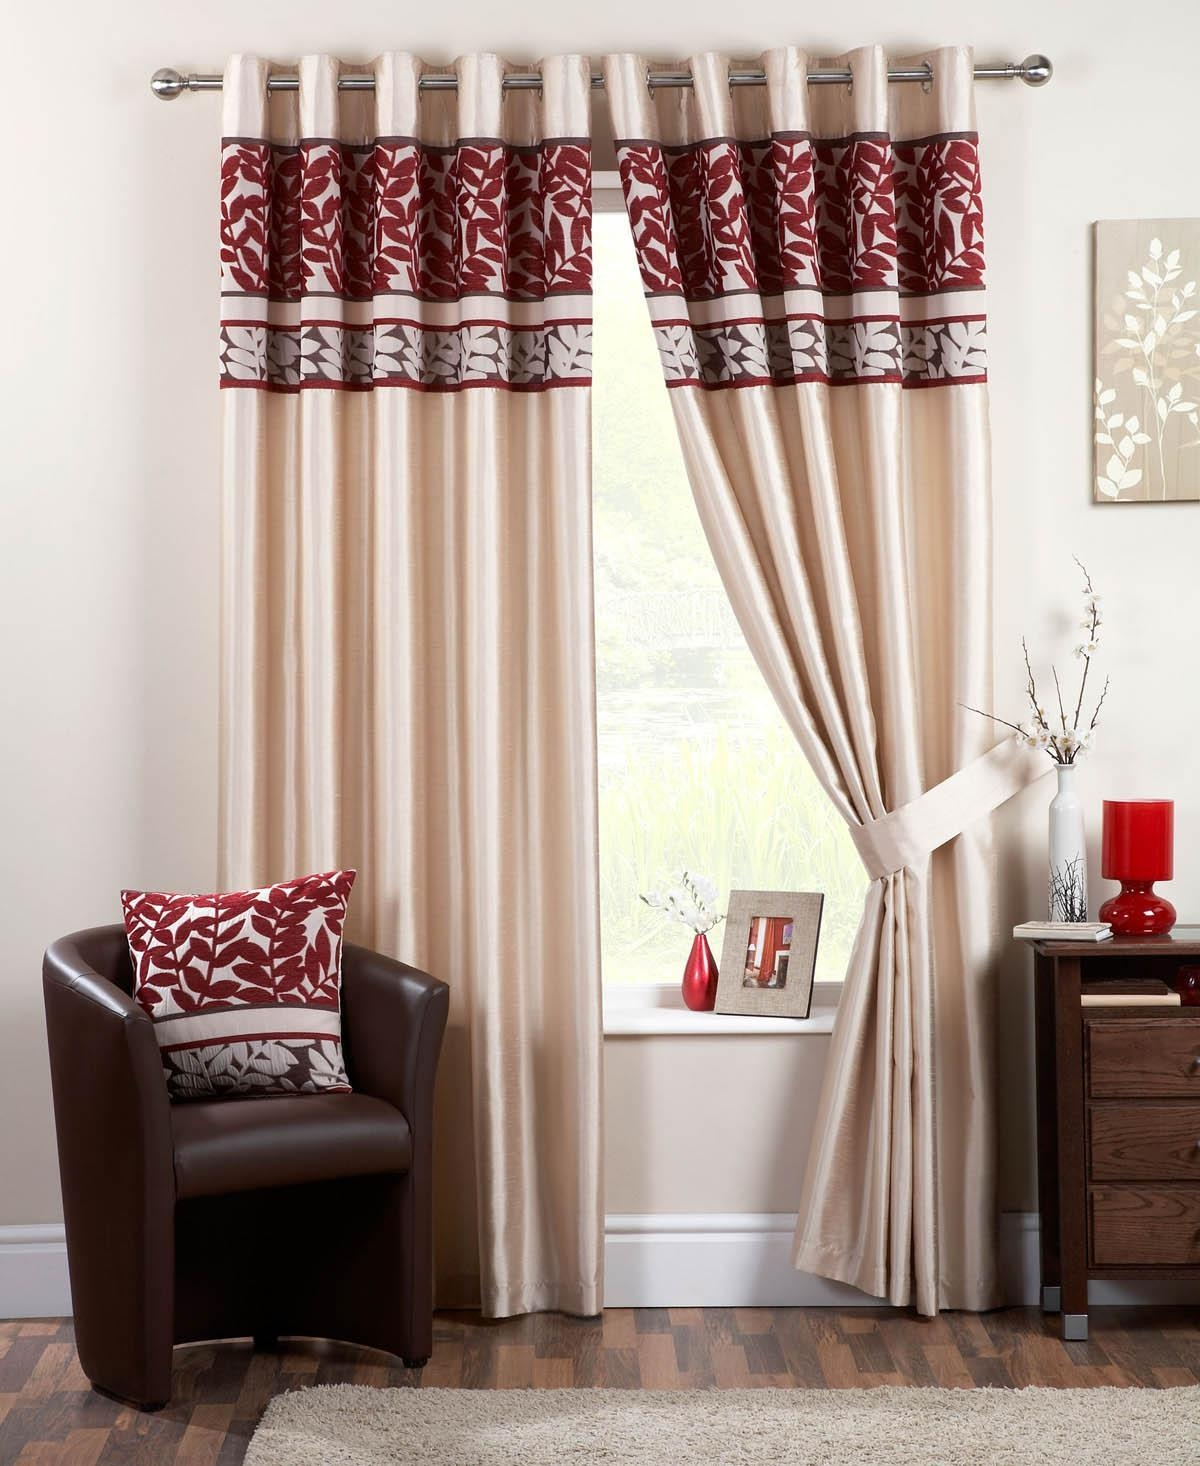 15 Cream Lined Curtains Curtain Ideas